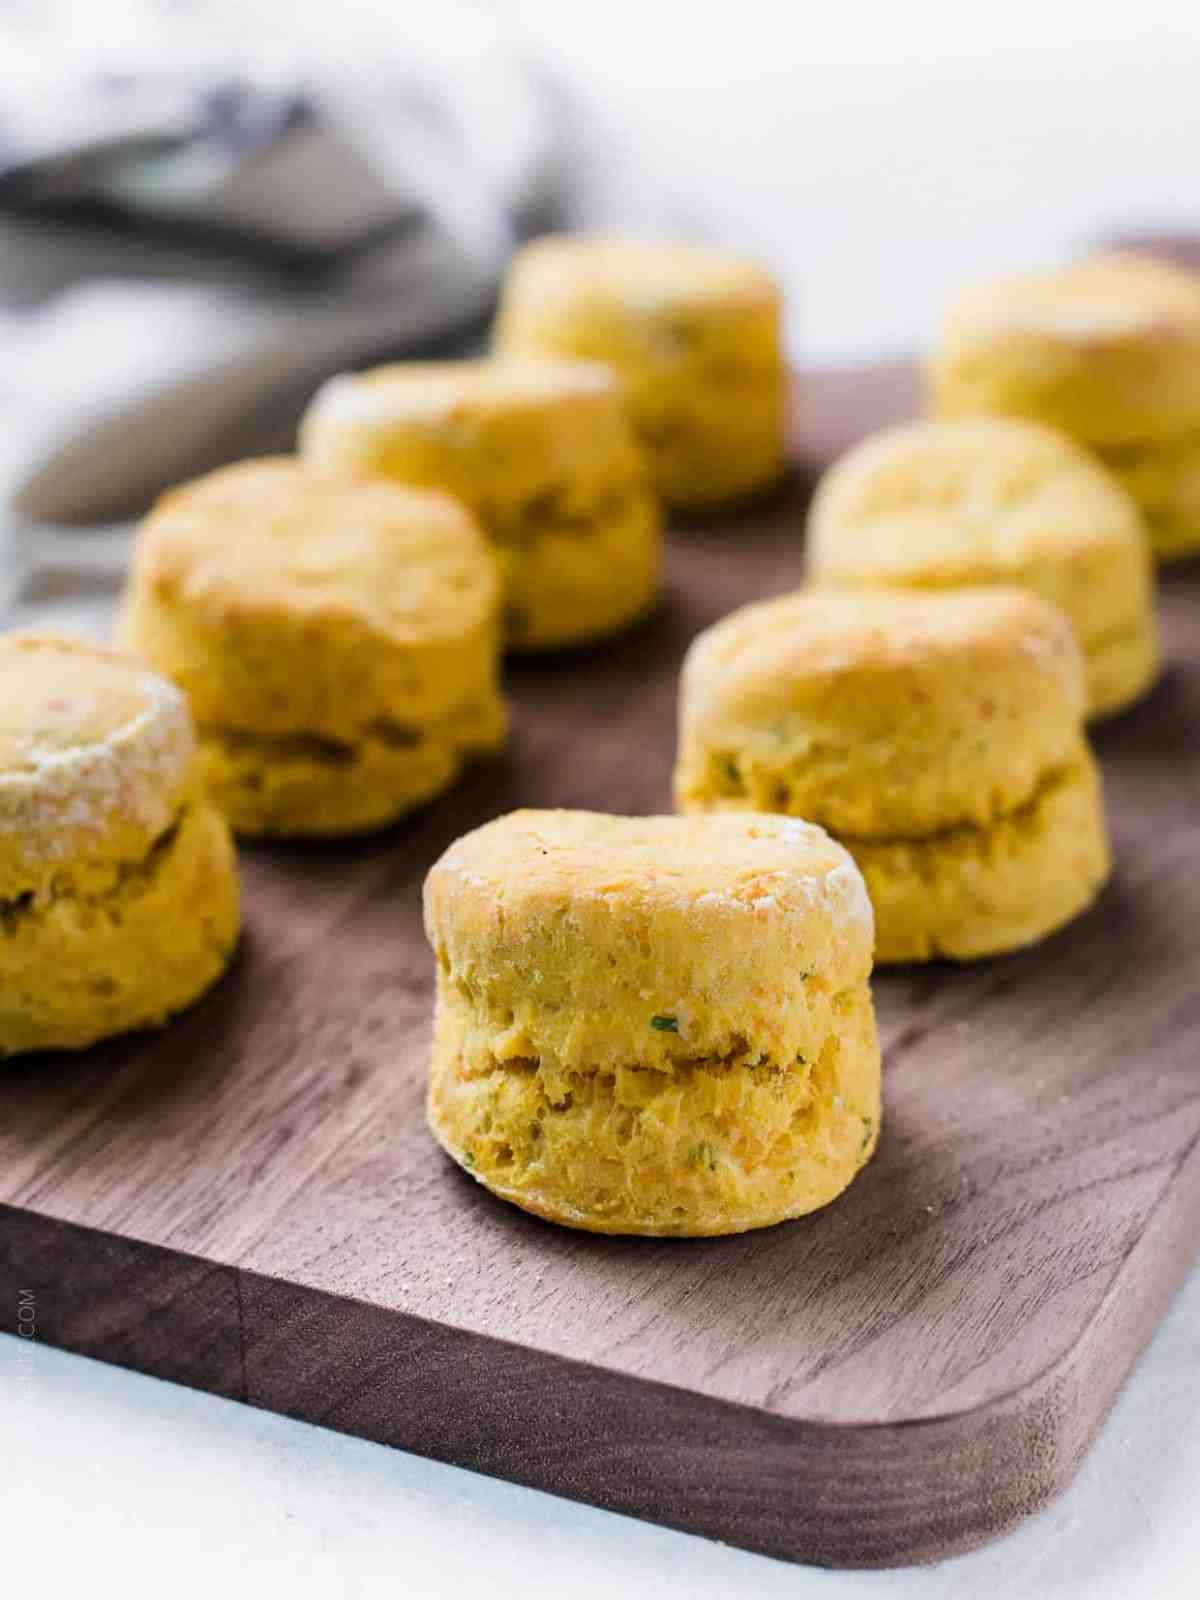 Pumpkin Cheddar Biscuits freshly baked and served on a wooden board.